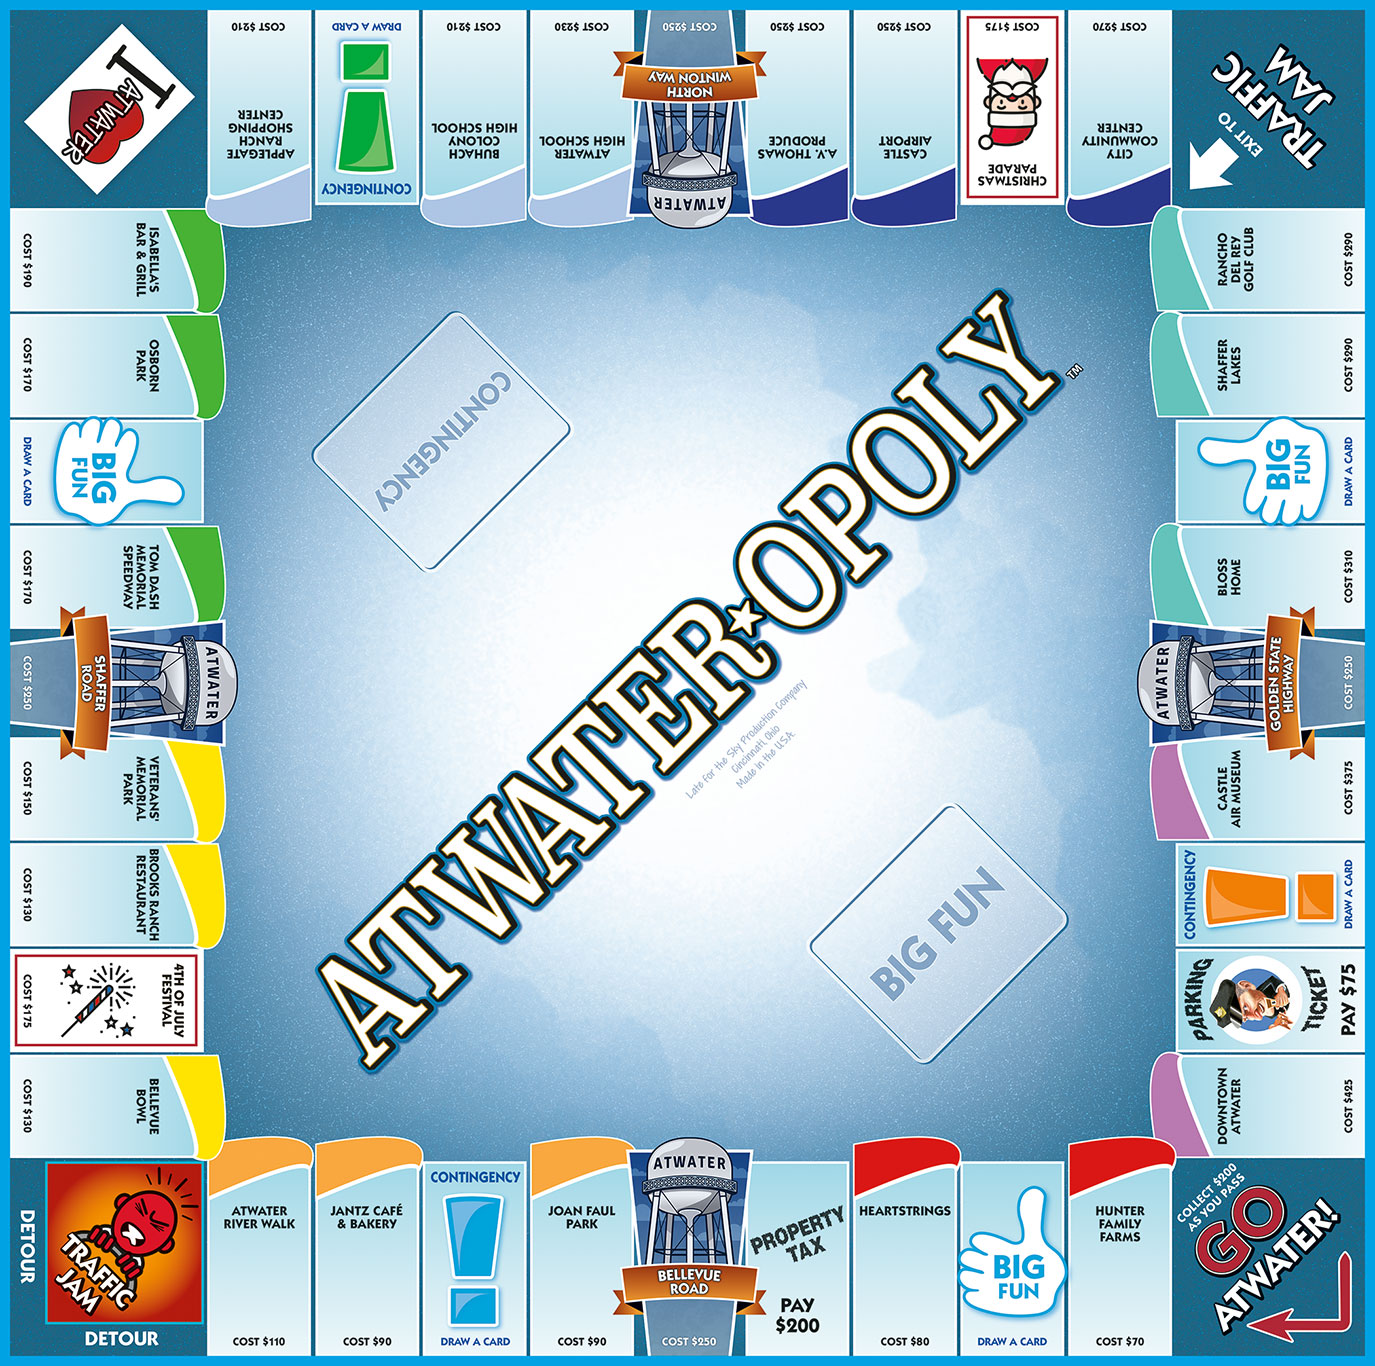 ATWATER-OPOLY Board Game